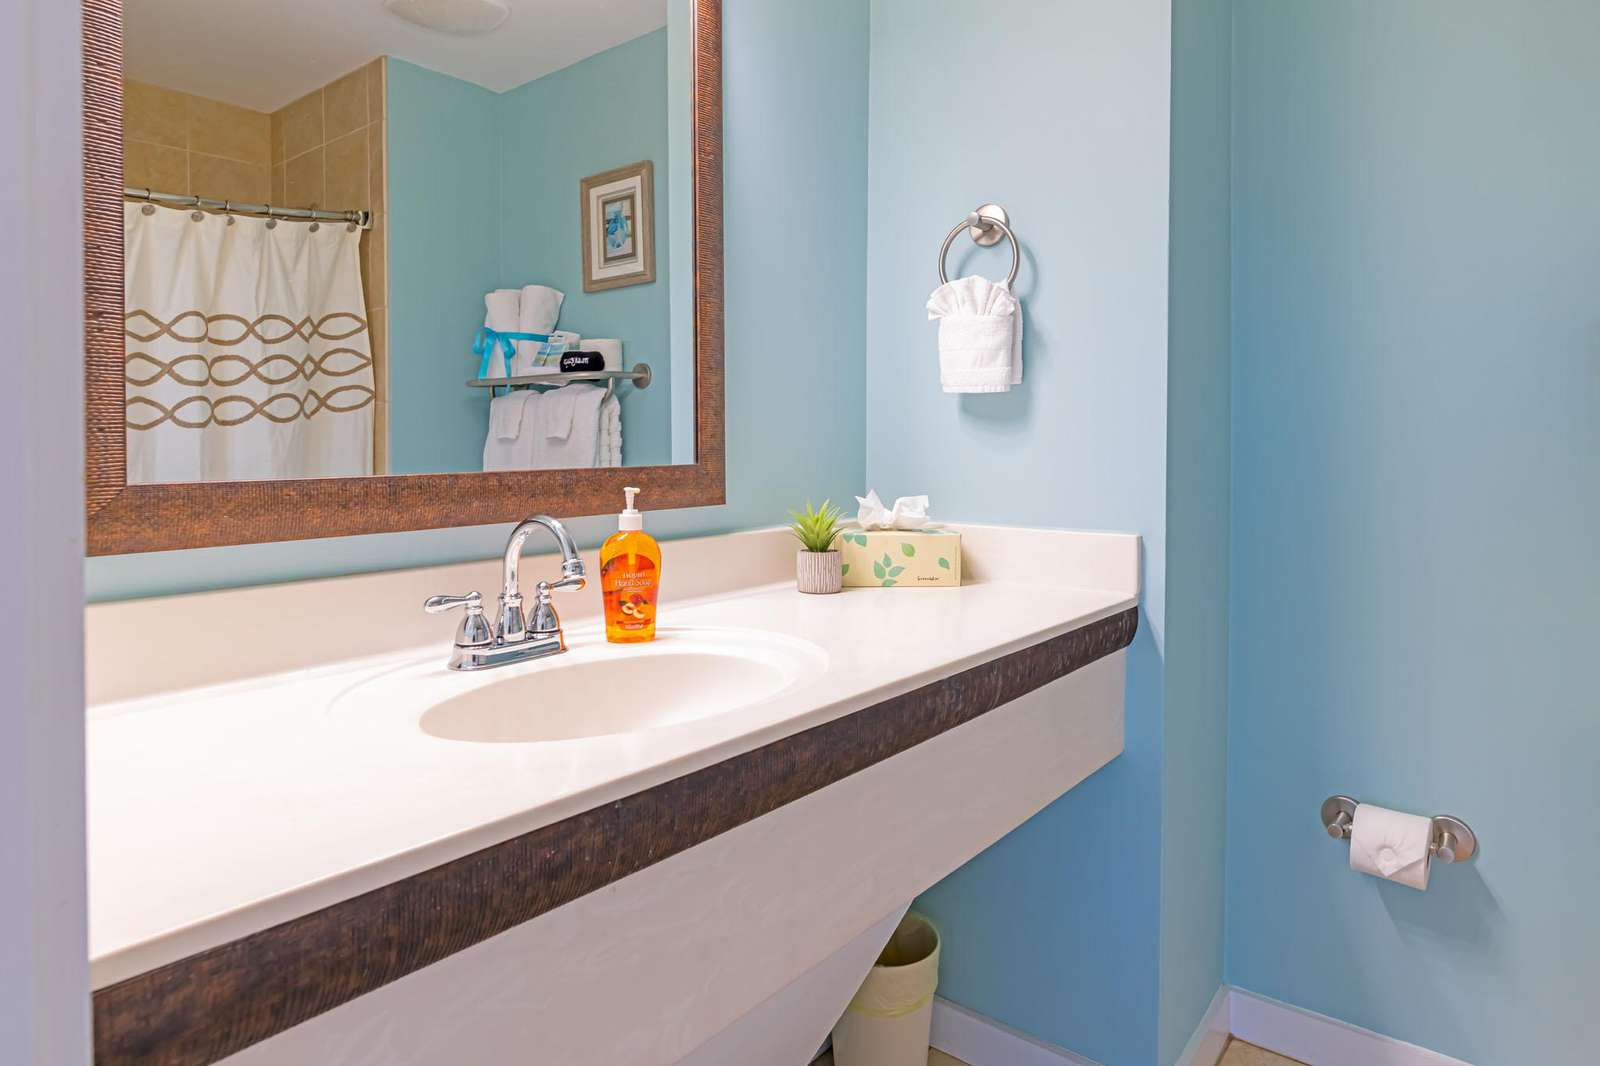 The cute beach decor and vibe carries into the bath!